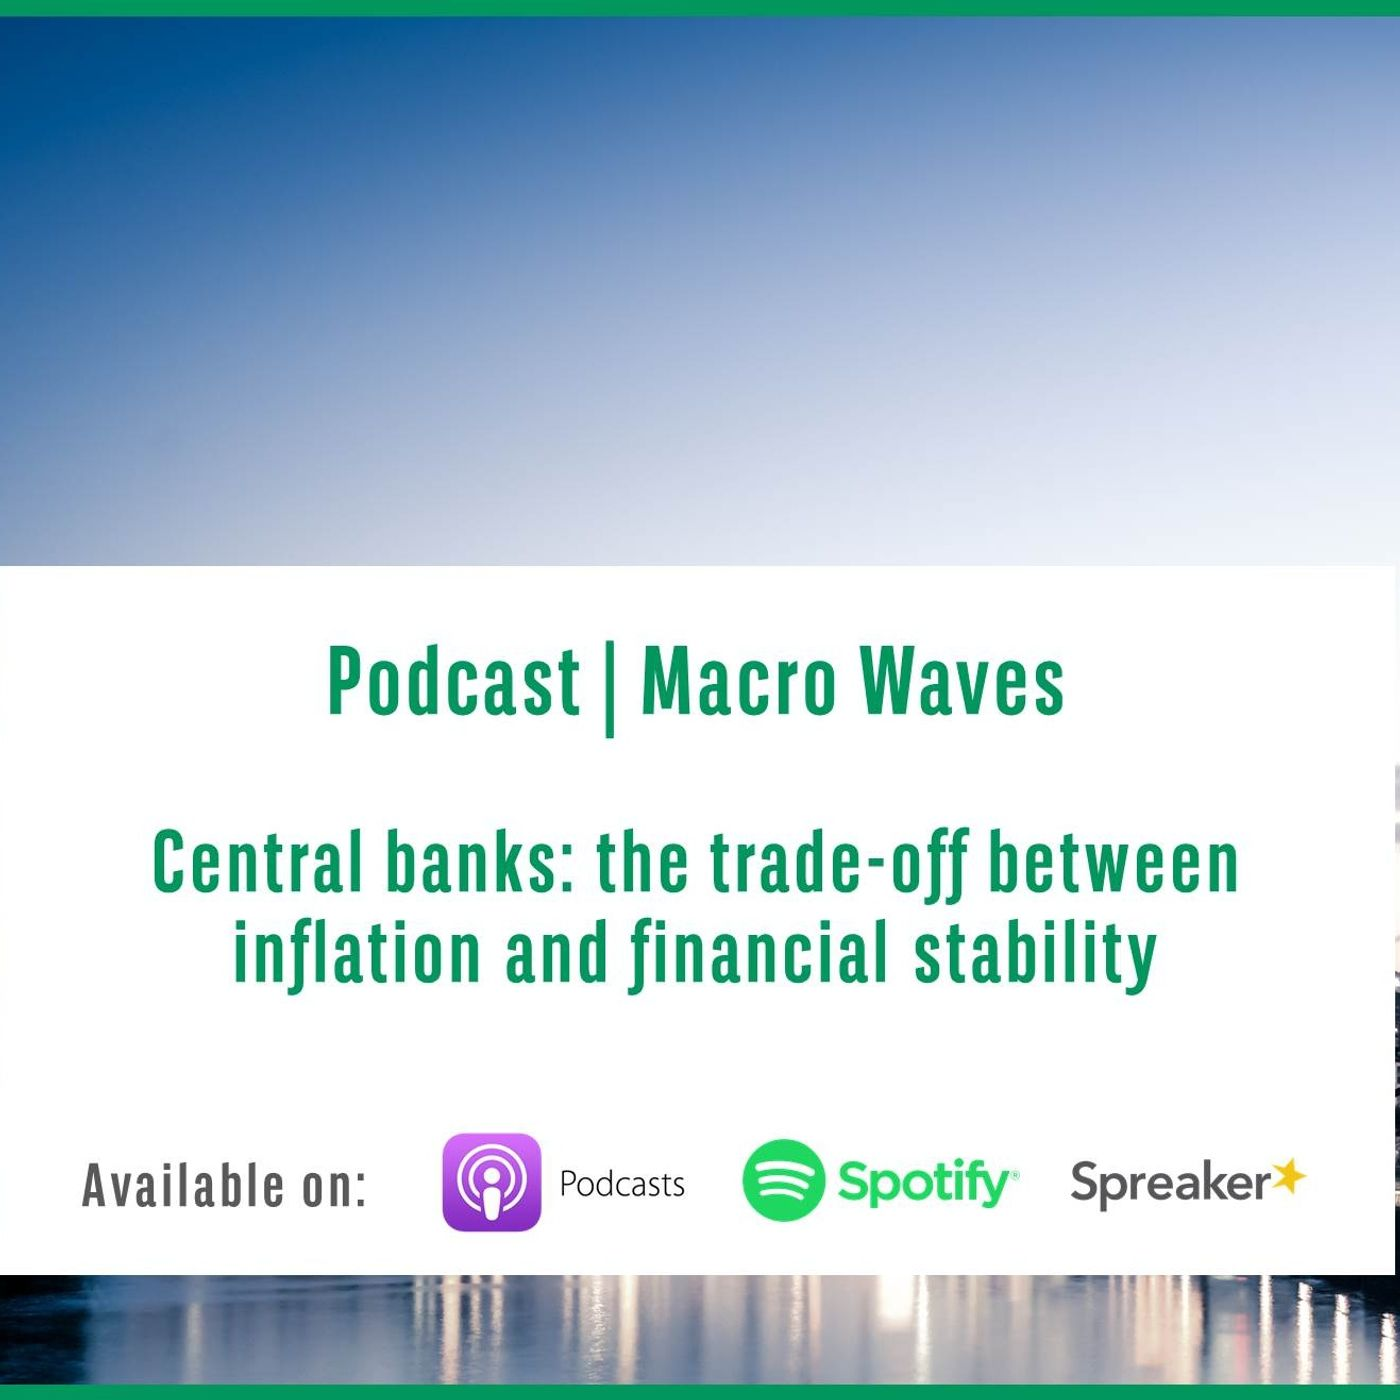 #2 – Central banks: the trade-off between inflation and financial stability